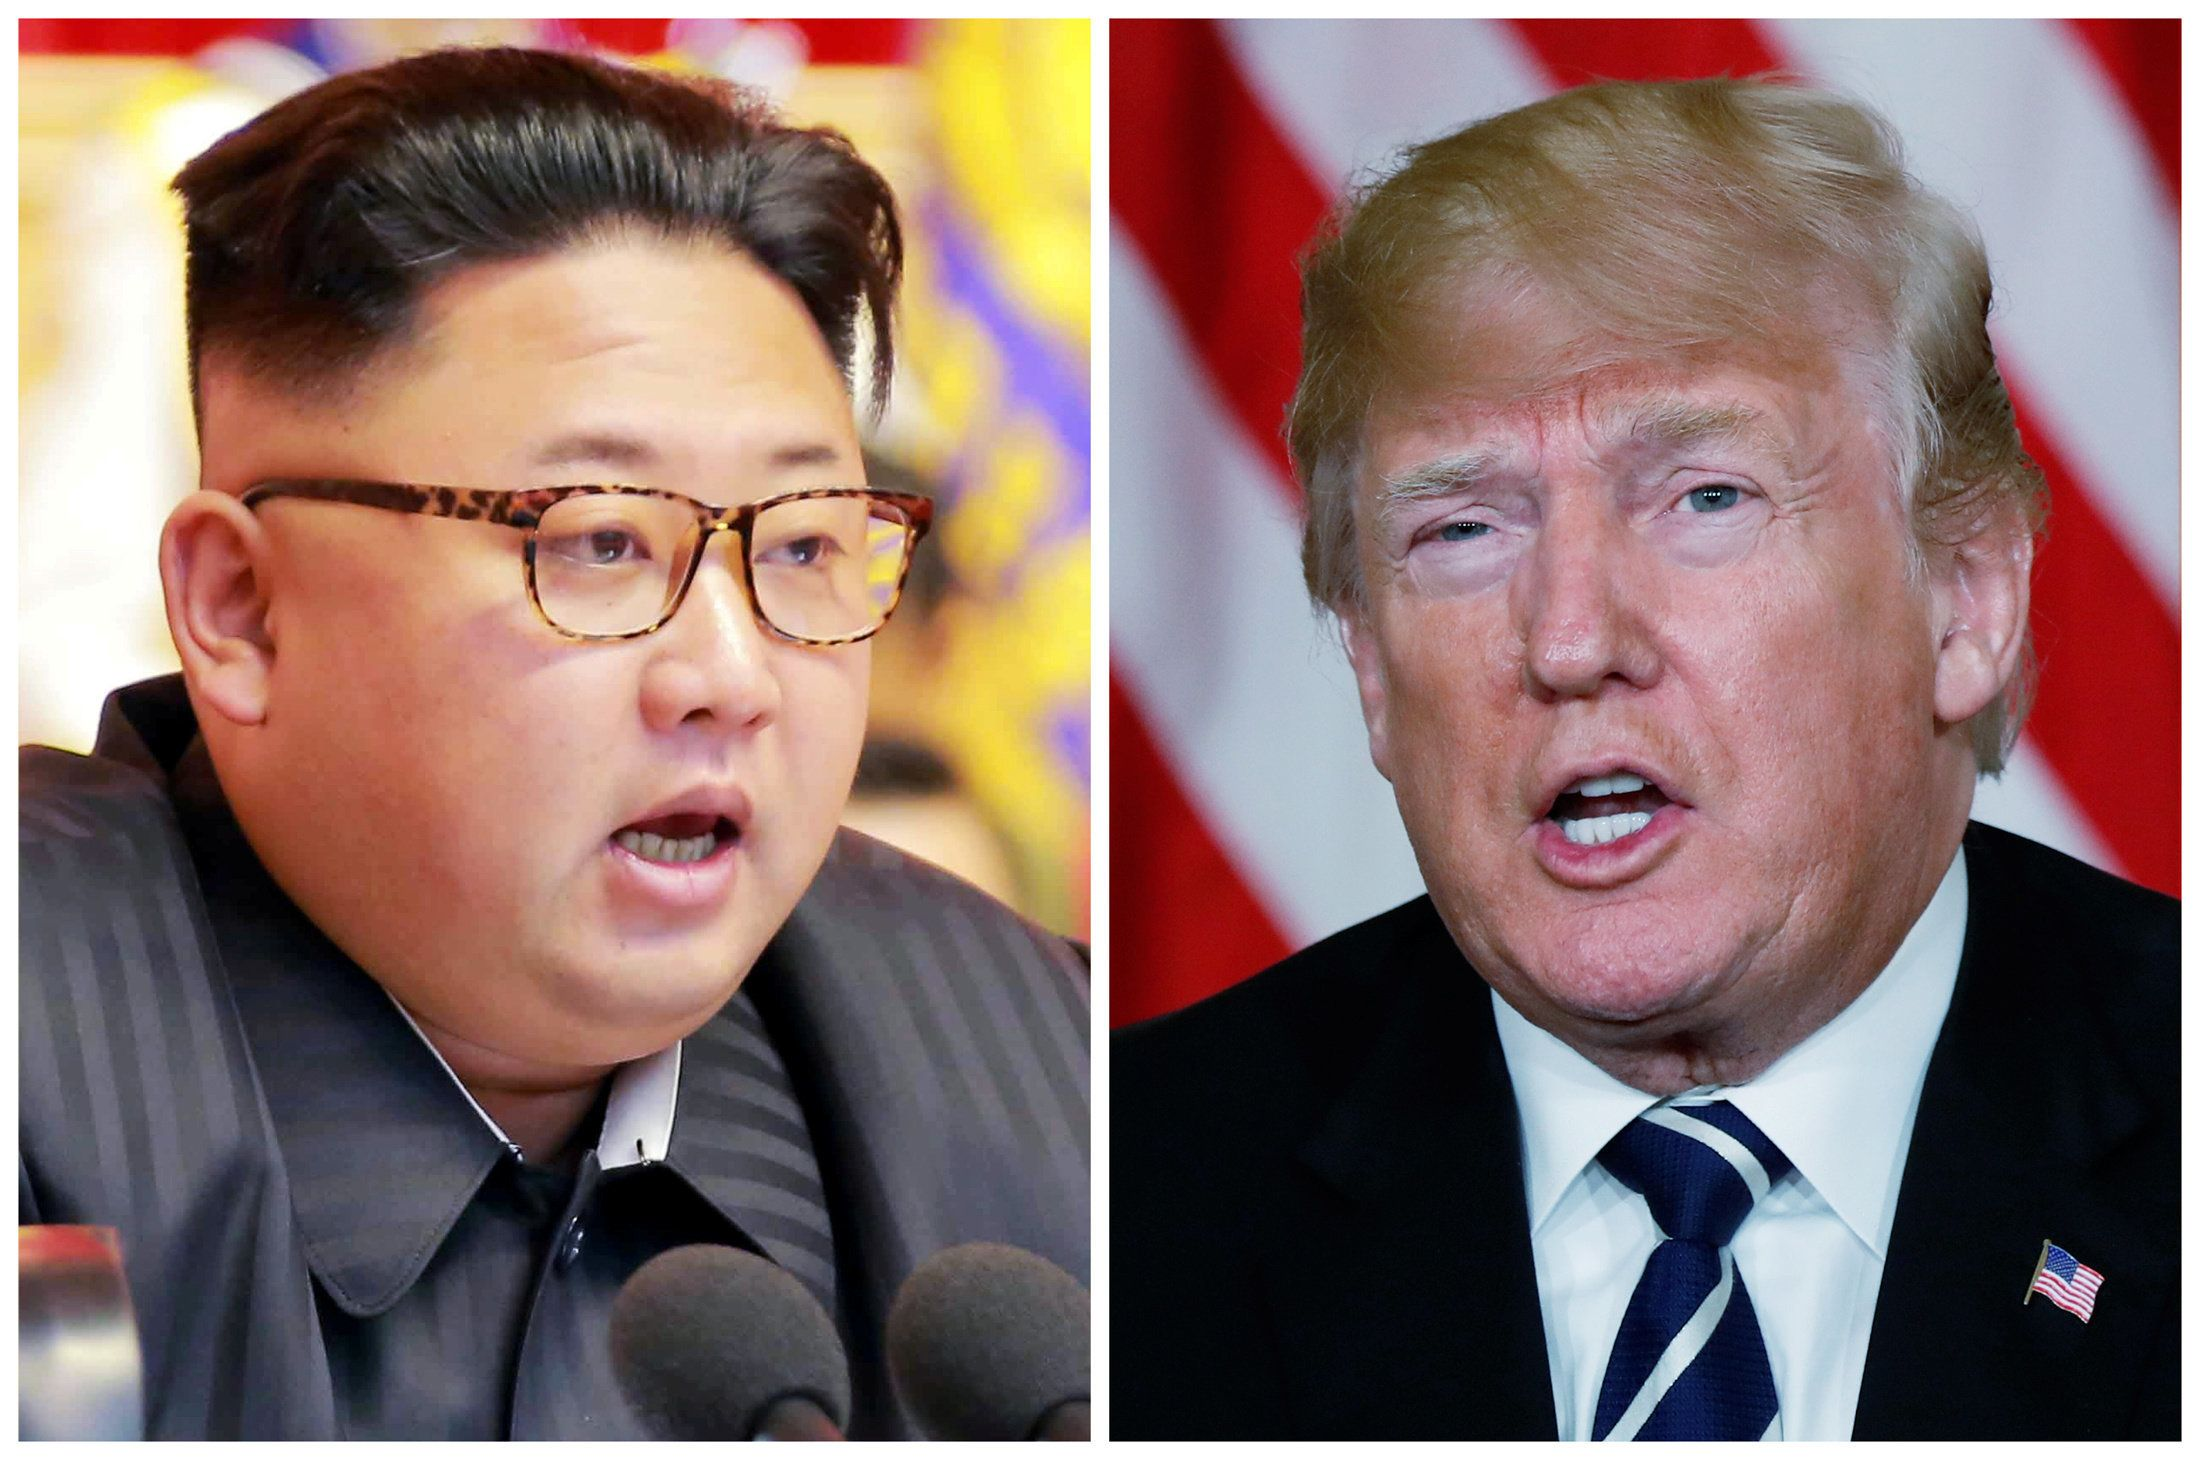 Donald Trump Says Summit With North Korea Is Back